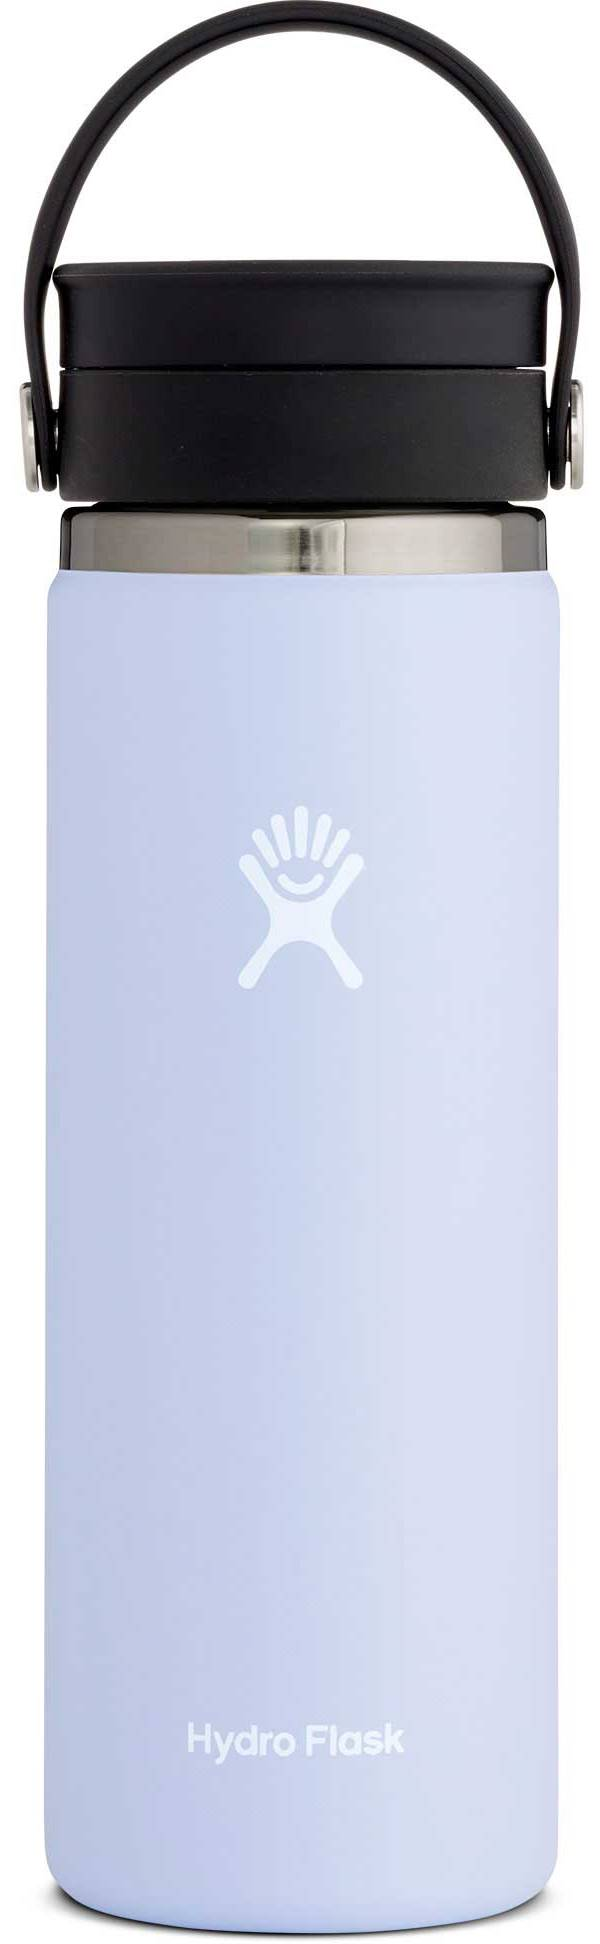 Hydro Flask Flex Sip 20 oz. Bottle product image